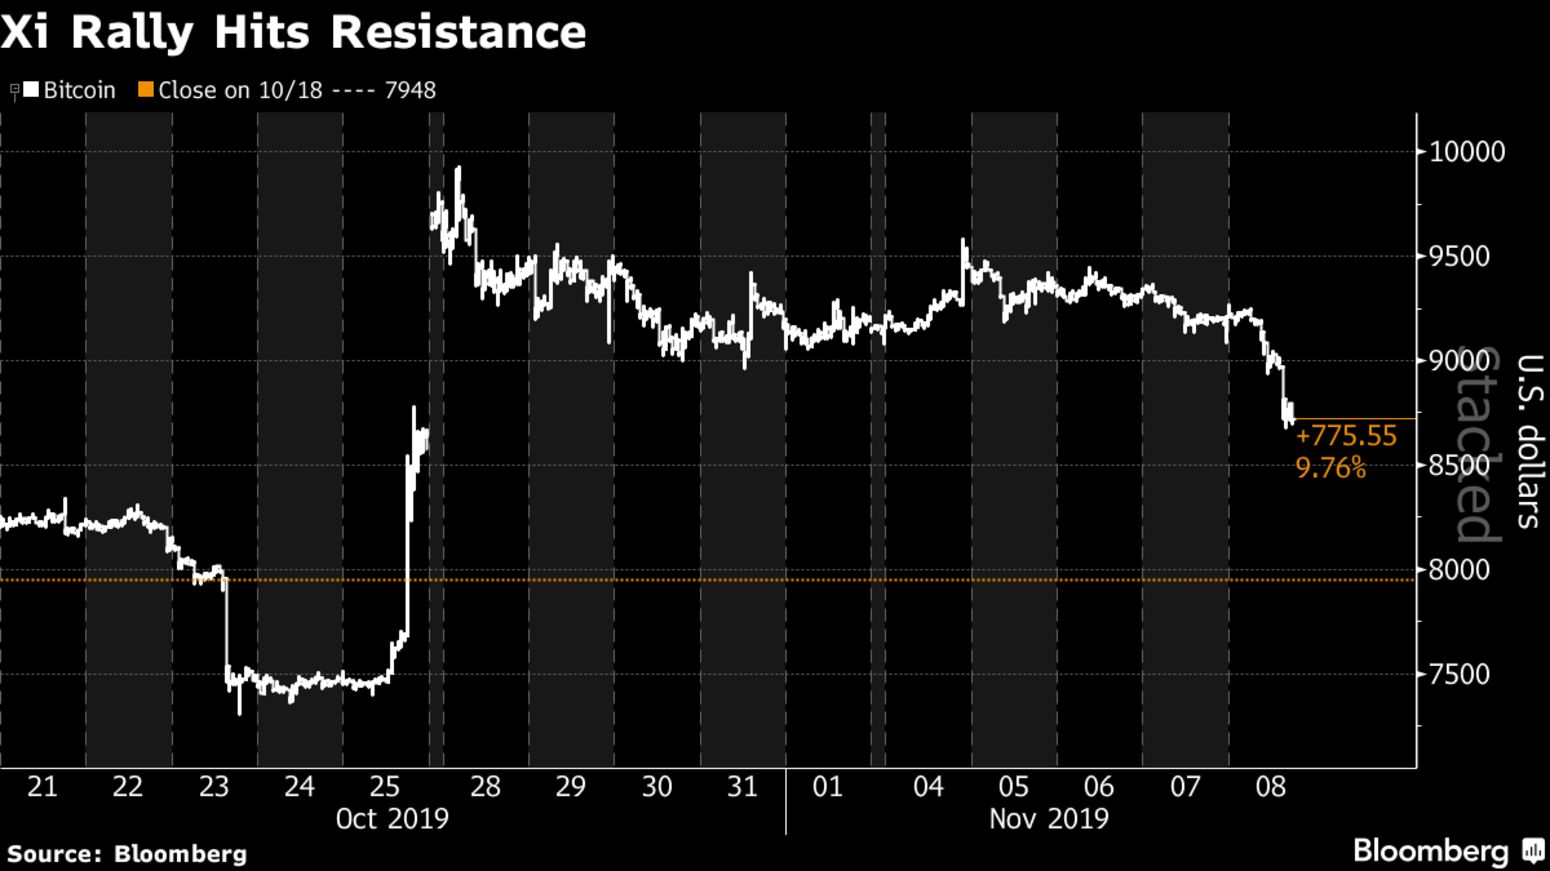 Xi Rally Hits Resistance